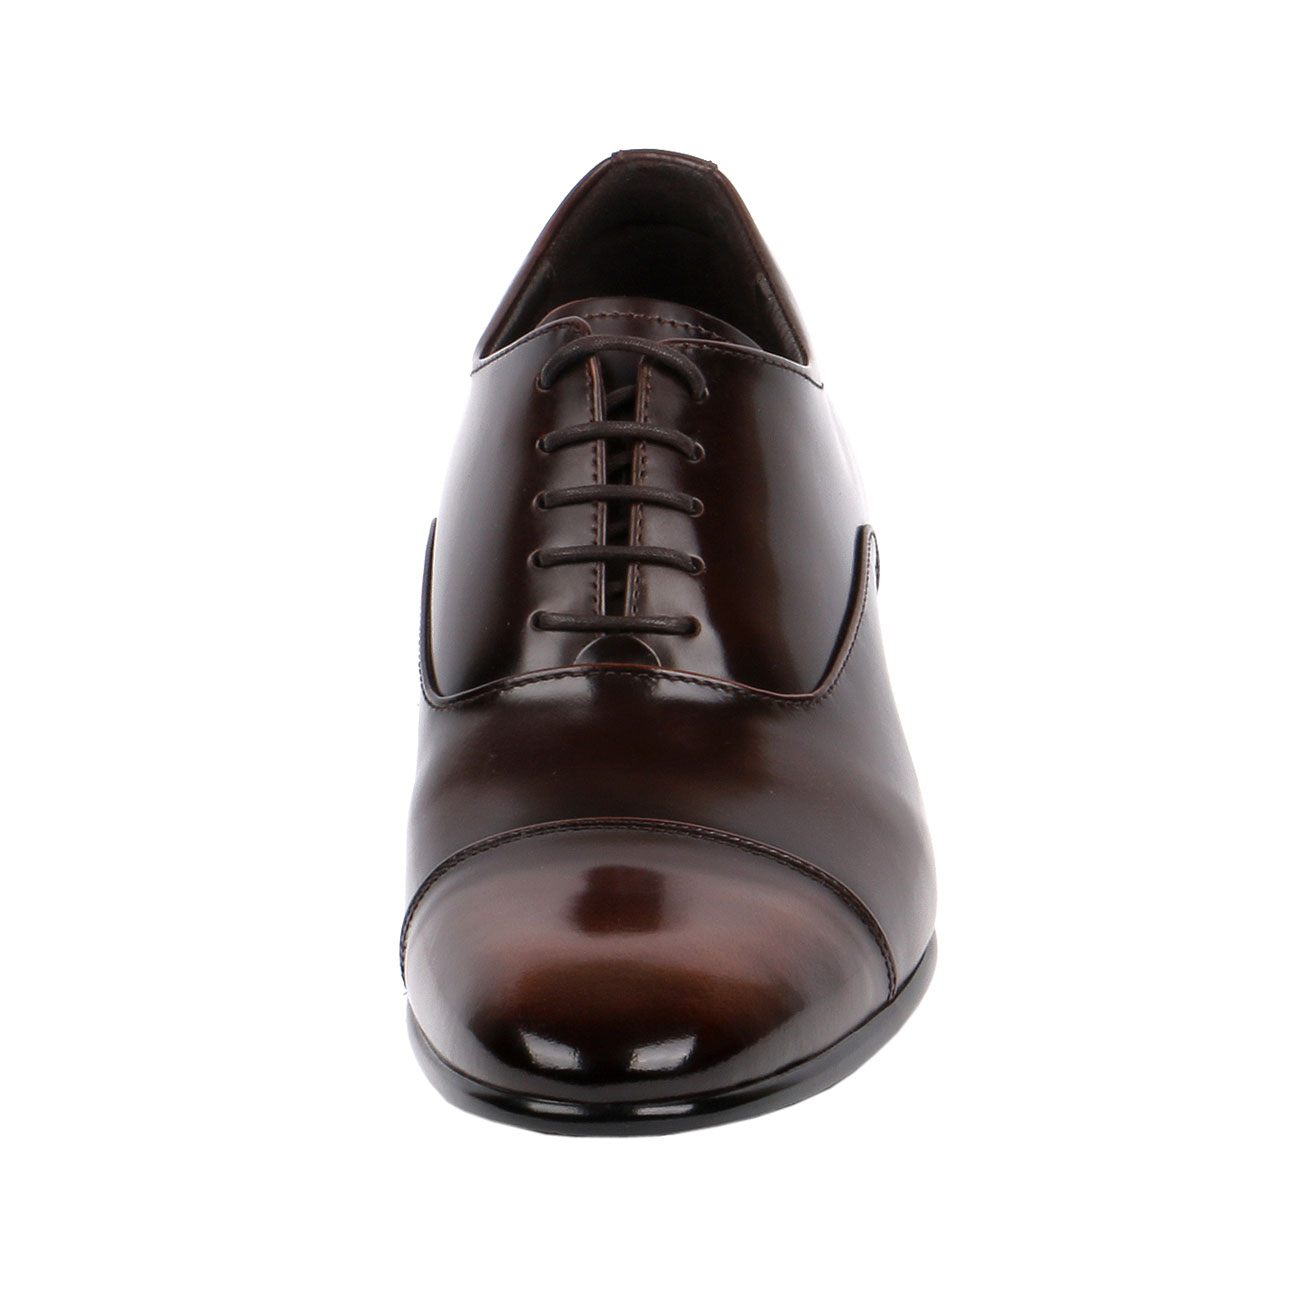 Classic A Cap-Toe Oxford Shoe With Two Tone Brown Semi Glossy Formal, Elegant & Dressy - Eindrof-2